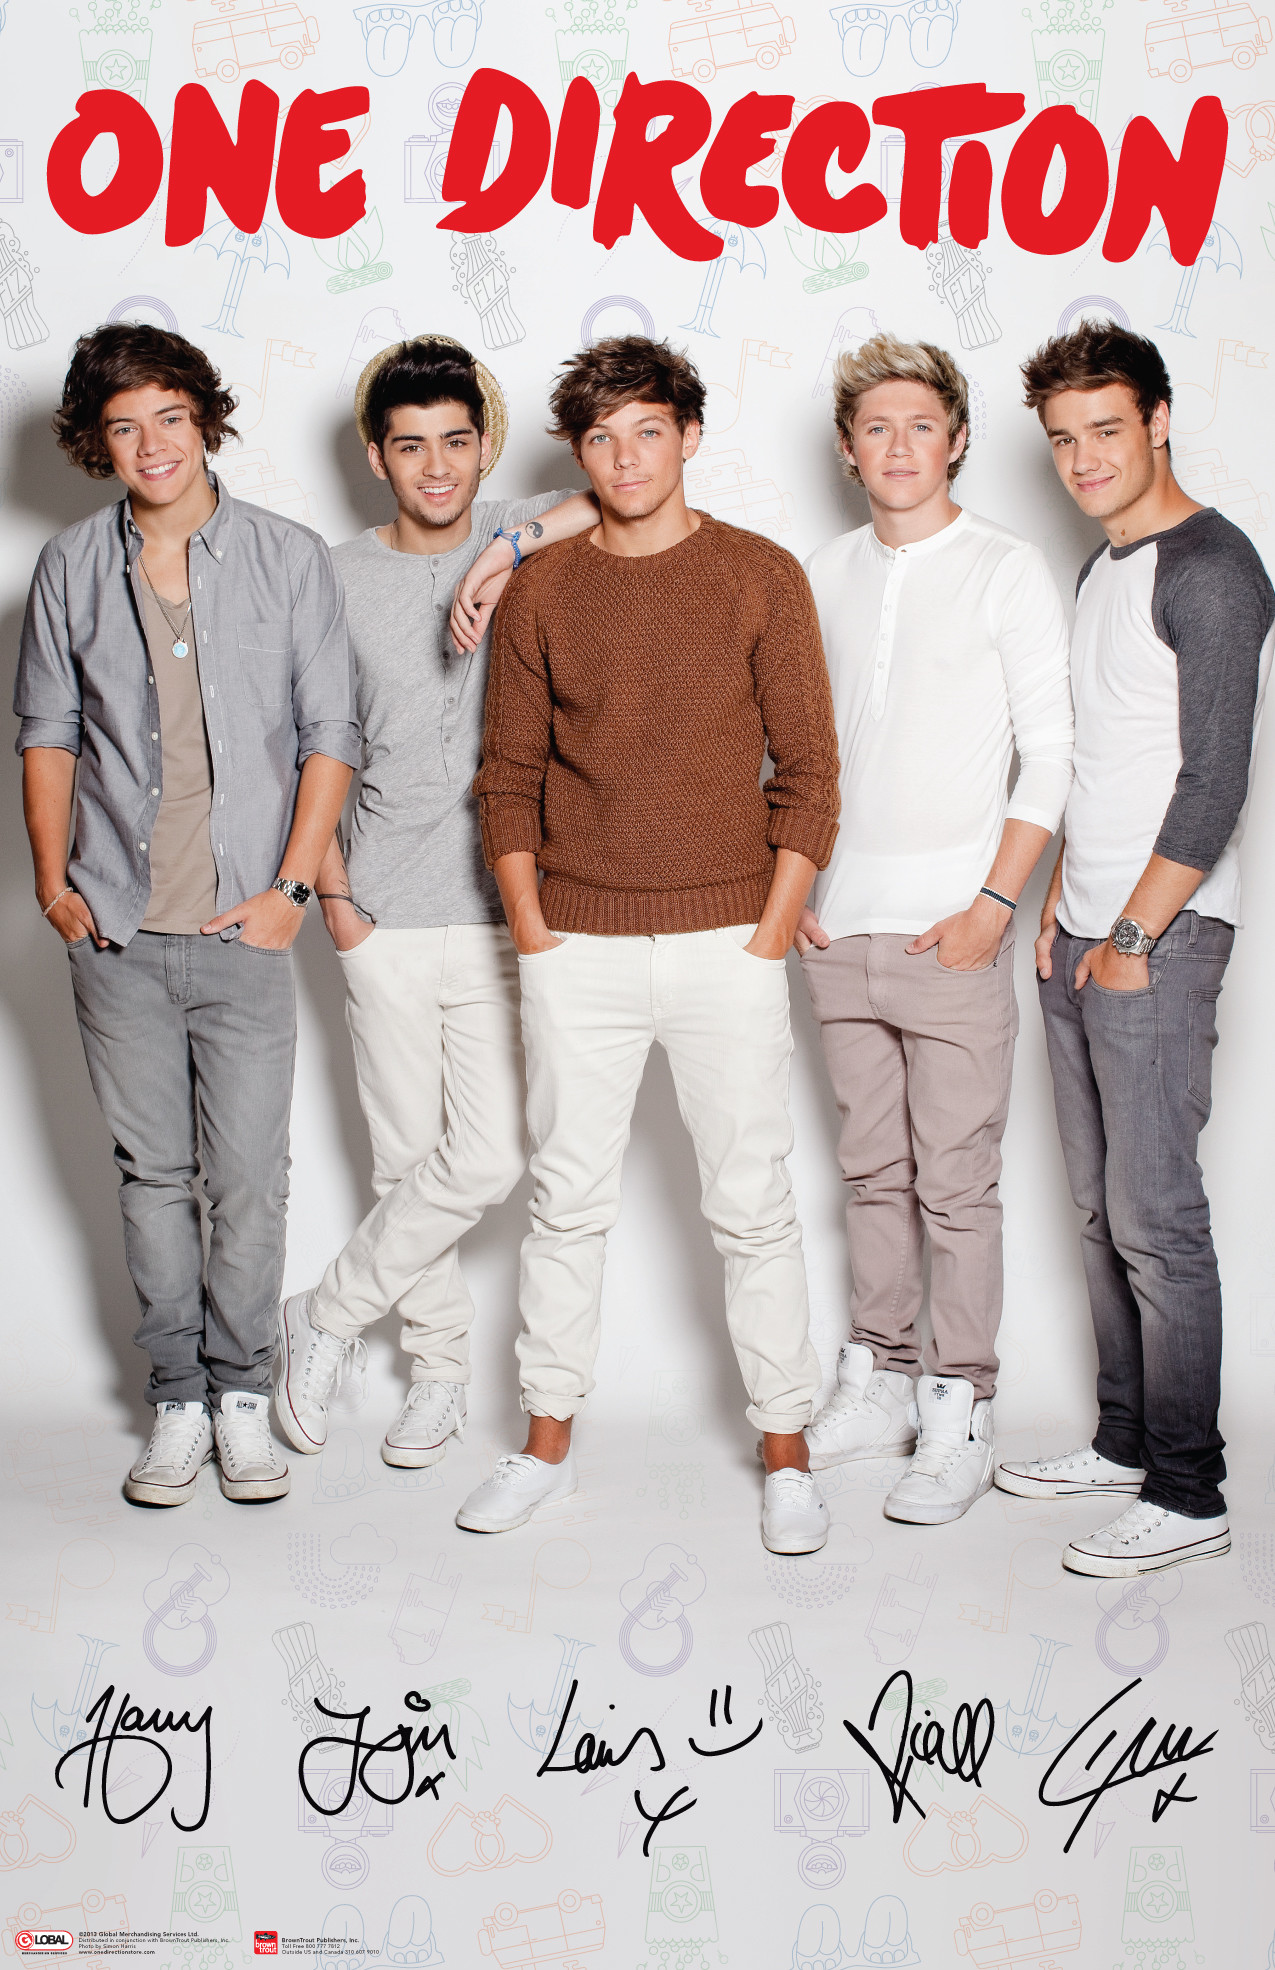 One Direction Group White Vertical Poster